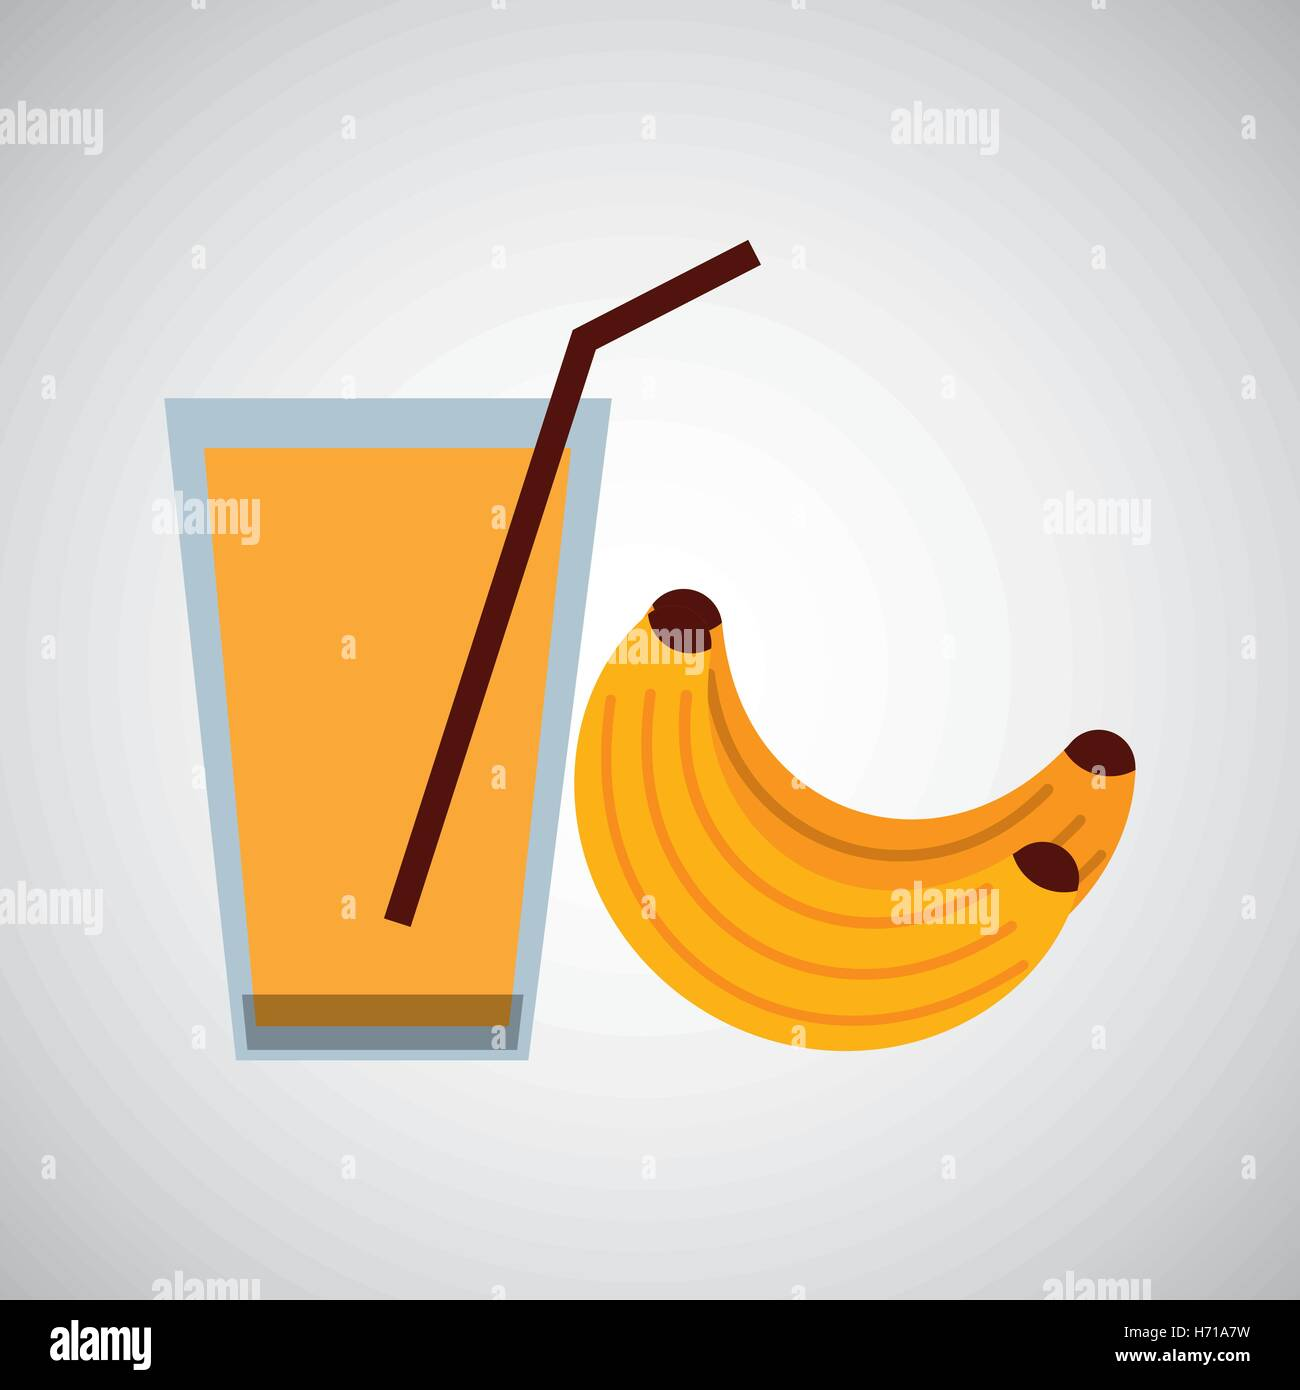 Glass juice cups design - Stock Vector Fresh Juice Banana And Cup Glass Straw Design Vector Illustration Eps 10